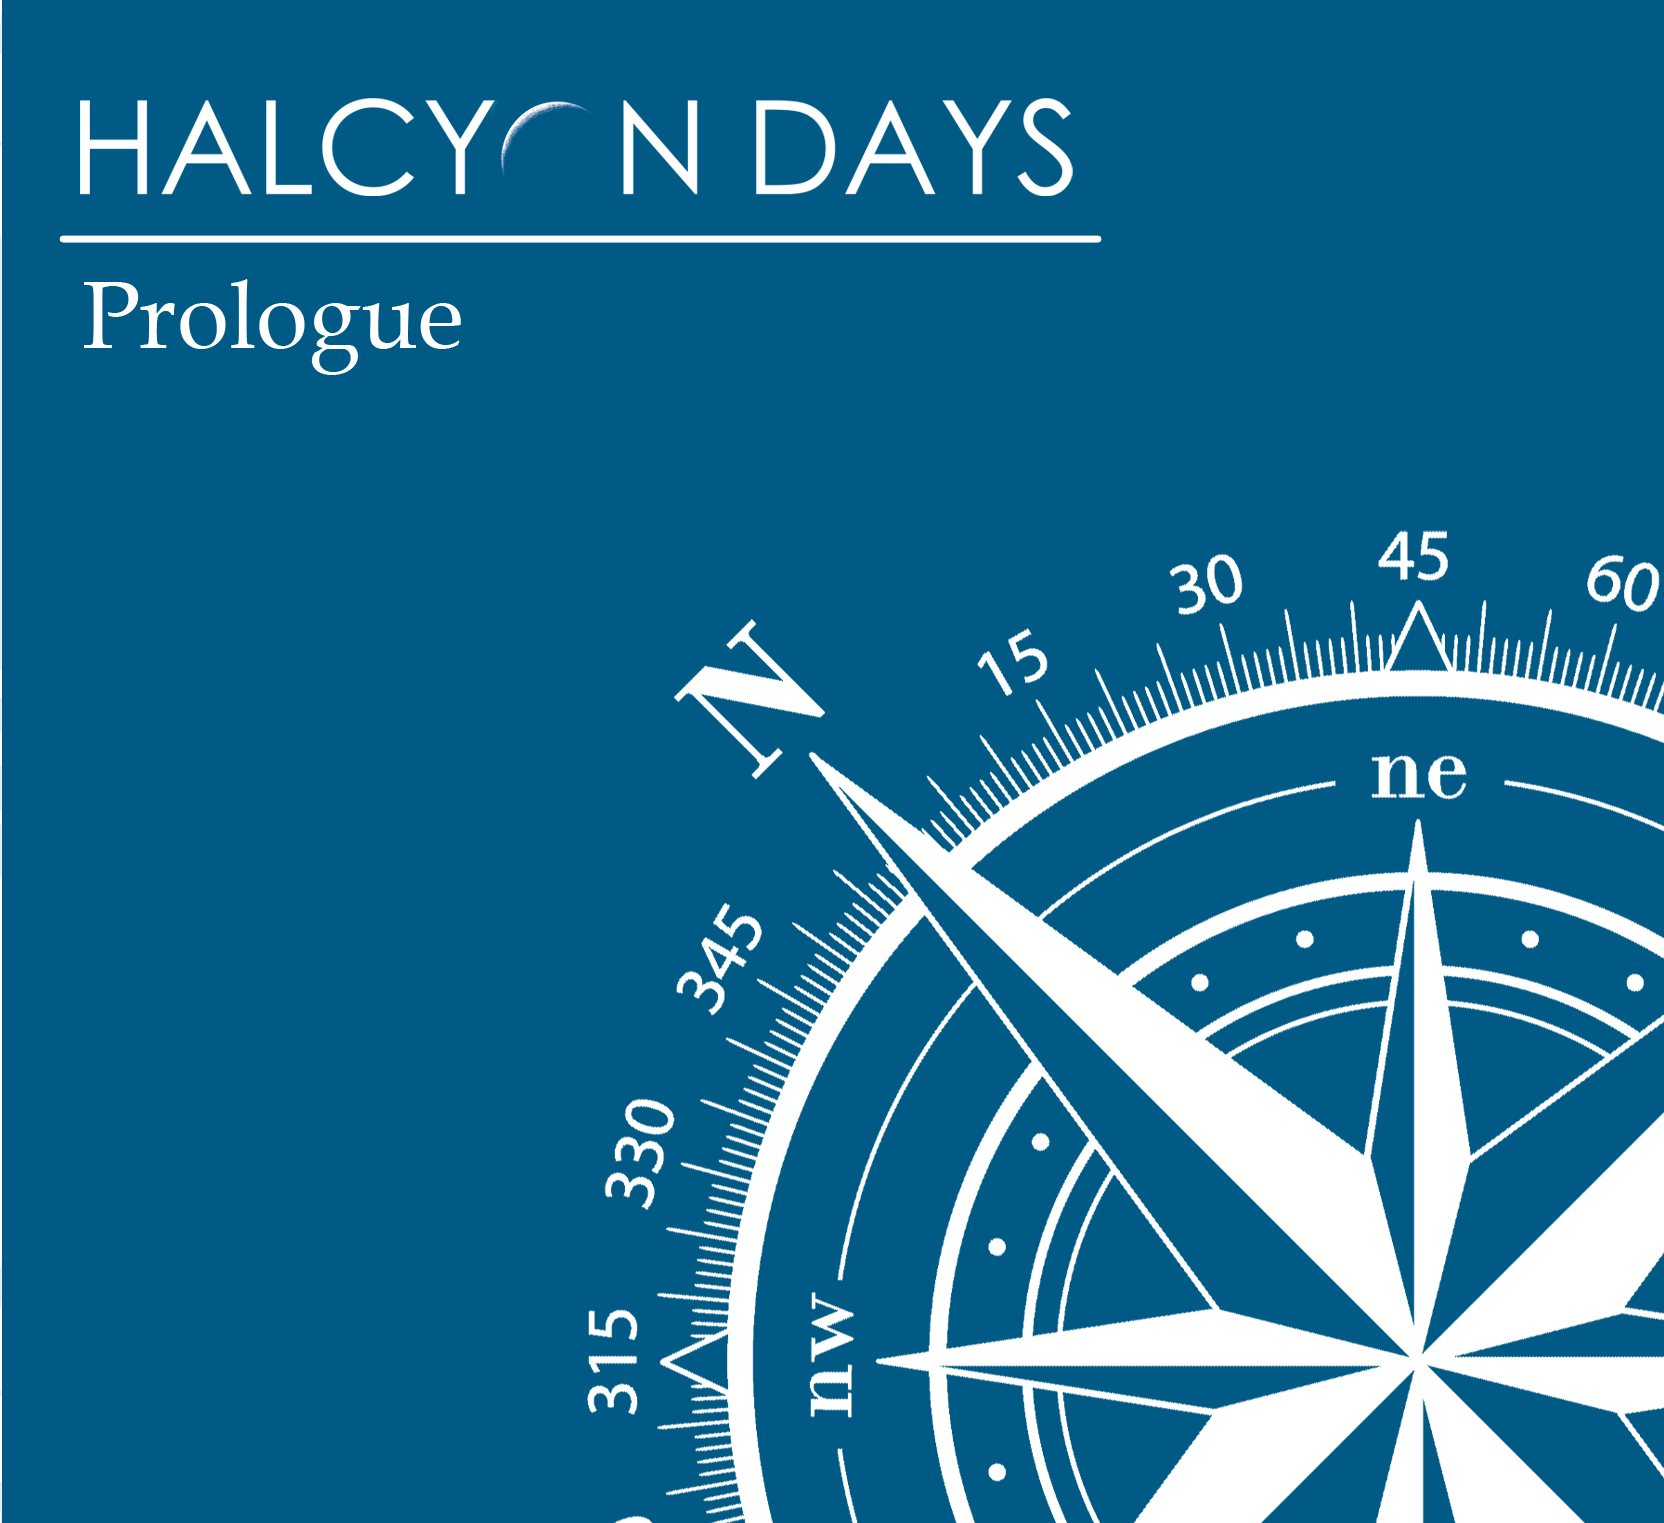 Halcyon Days - Prologue